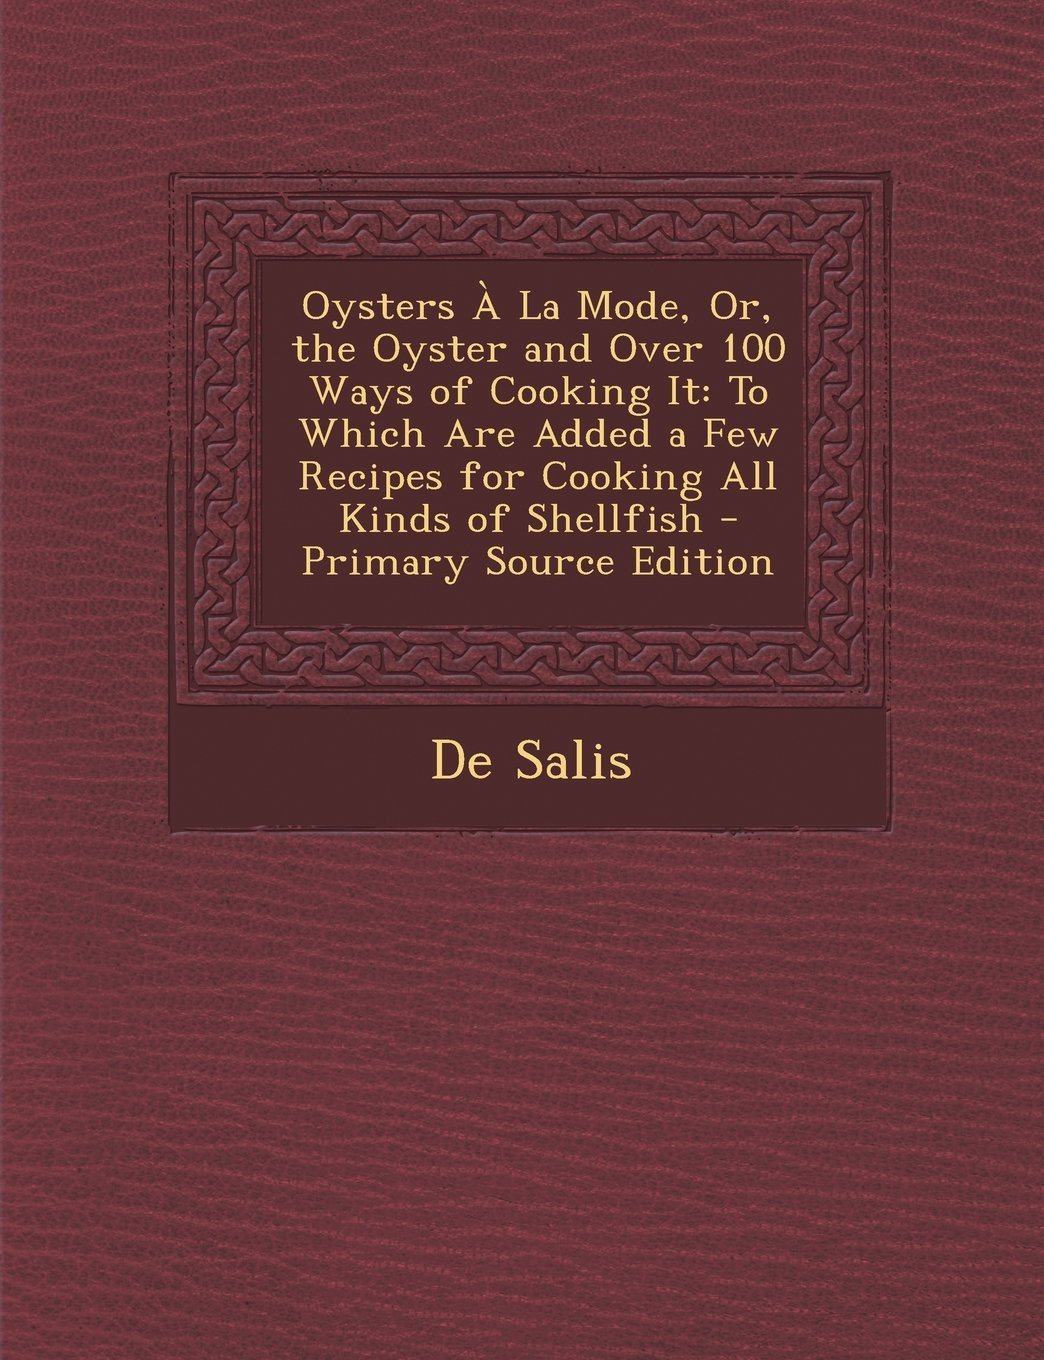 Oysters À La Mode, Or, the Oyster and Over 100 Ways of Cooking It: To Which Are Added a Few Recipes for Cooking All Kinds of Shellfish PDF